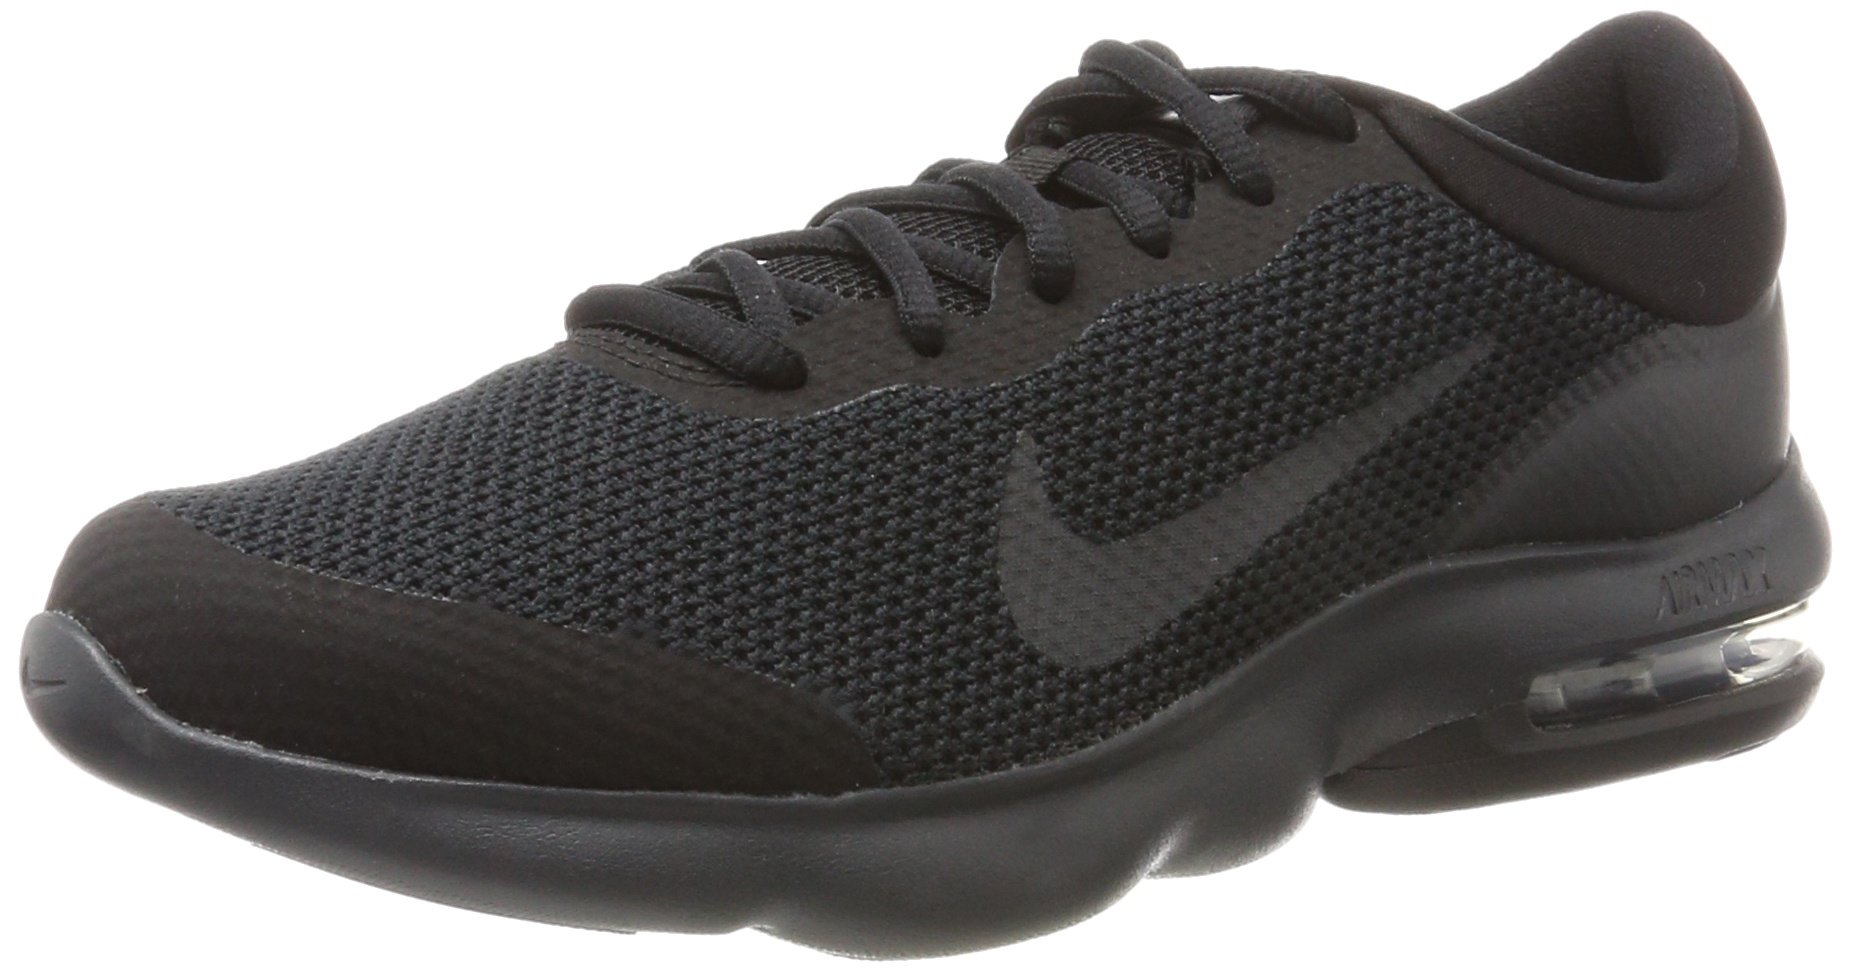 huge discount fbadc 77529 Galleon - Nike Mens AIR MAX Advantage Black Anthracite Size 8.5